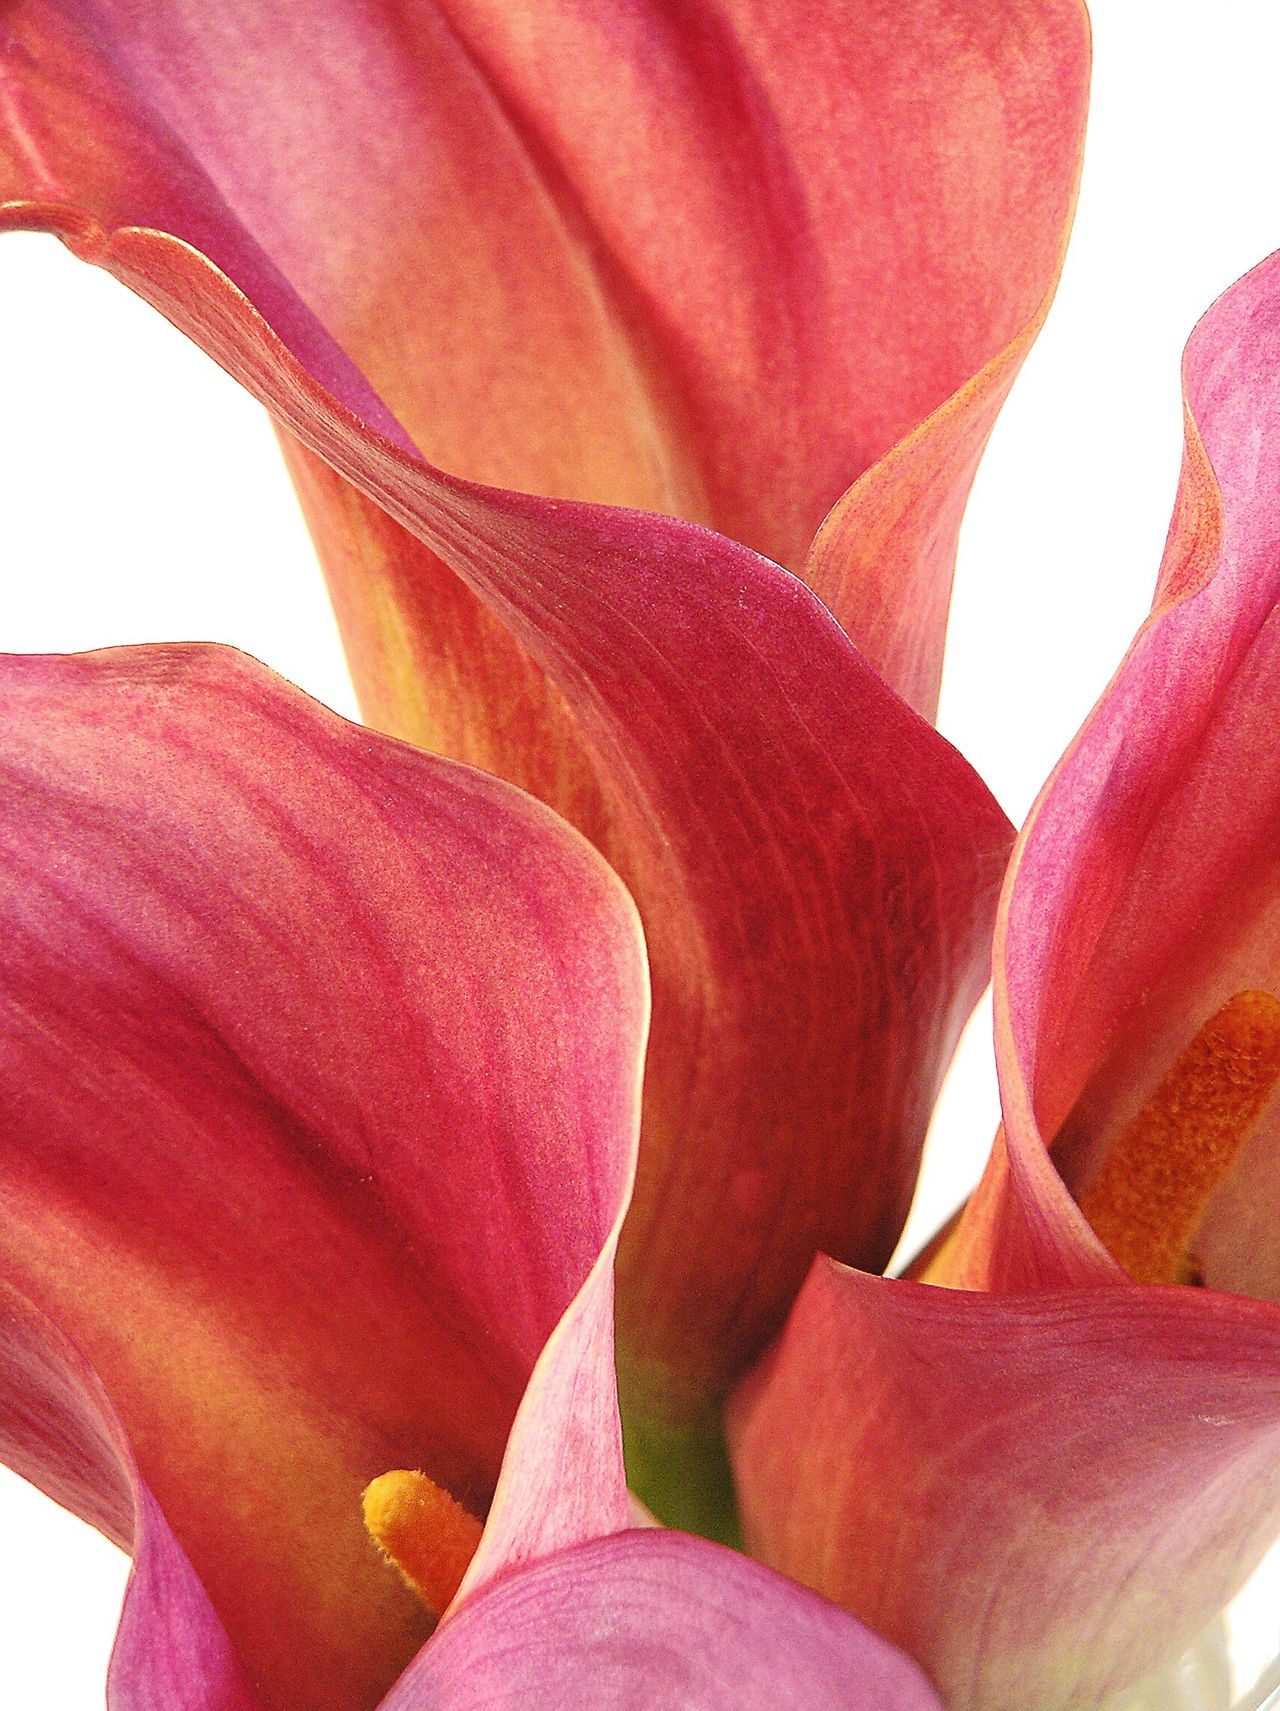 Flower Close-up Beauty In Nature Extreme Close-up Macro Flower Head Lilies Calla Lily Zantedeschia Pink Flower Pink Petal Nature In Bloom Detail Studio Shot